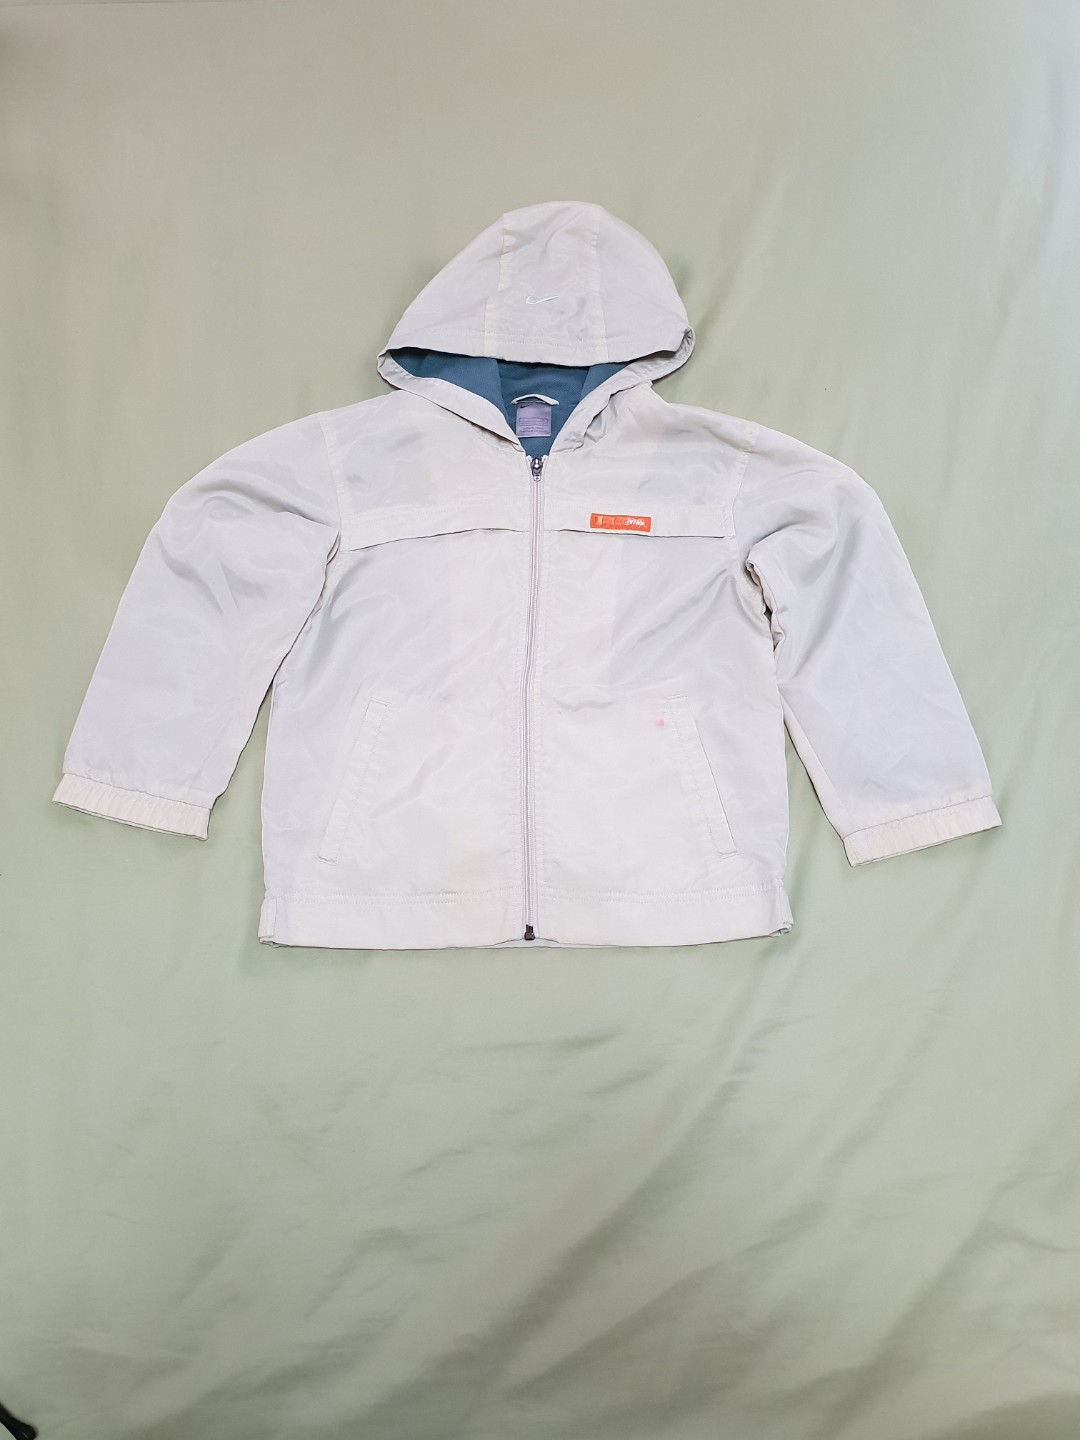 1274bd6ff5 Kid's Nike Jacket, Size: L, Kid's Clothes, Babies & Kids, Boys ...